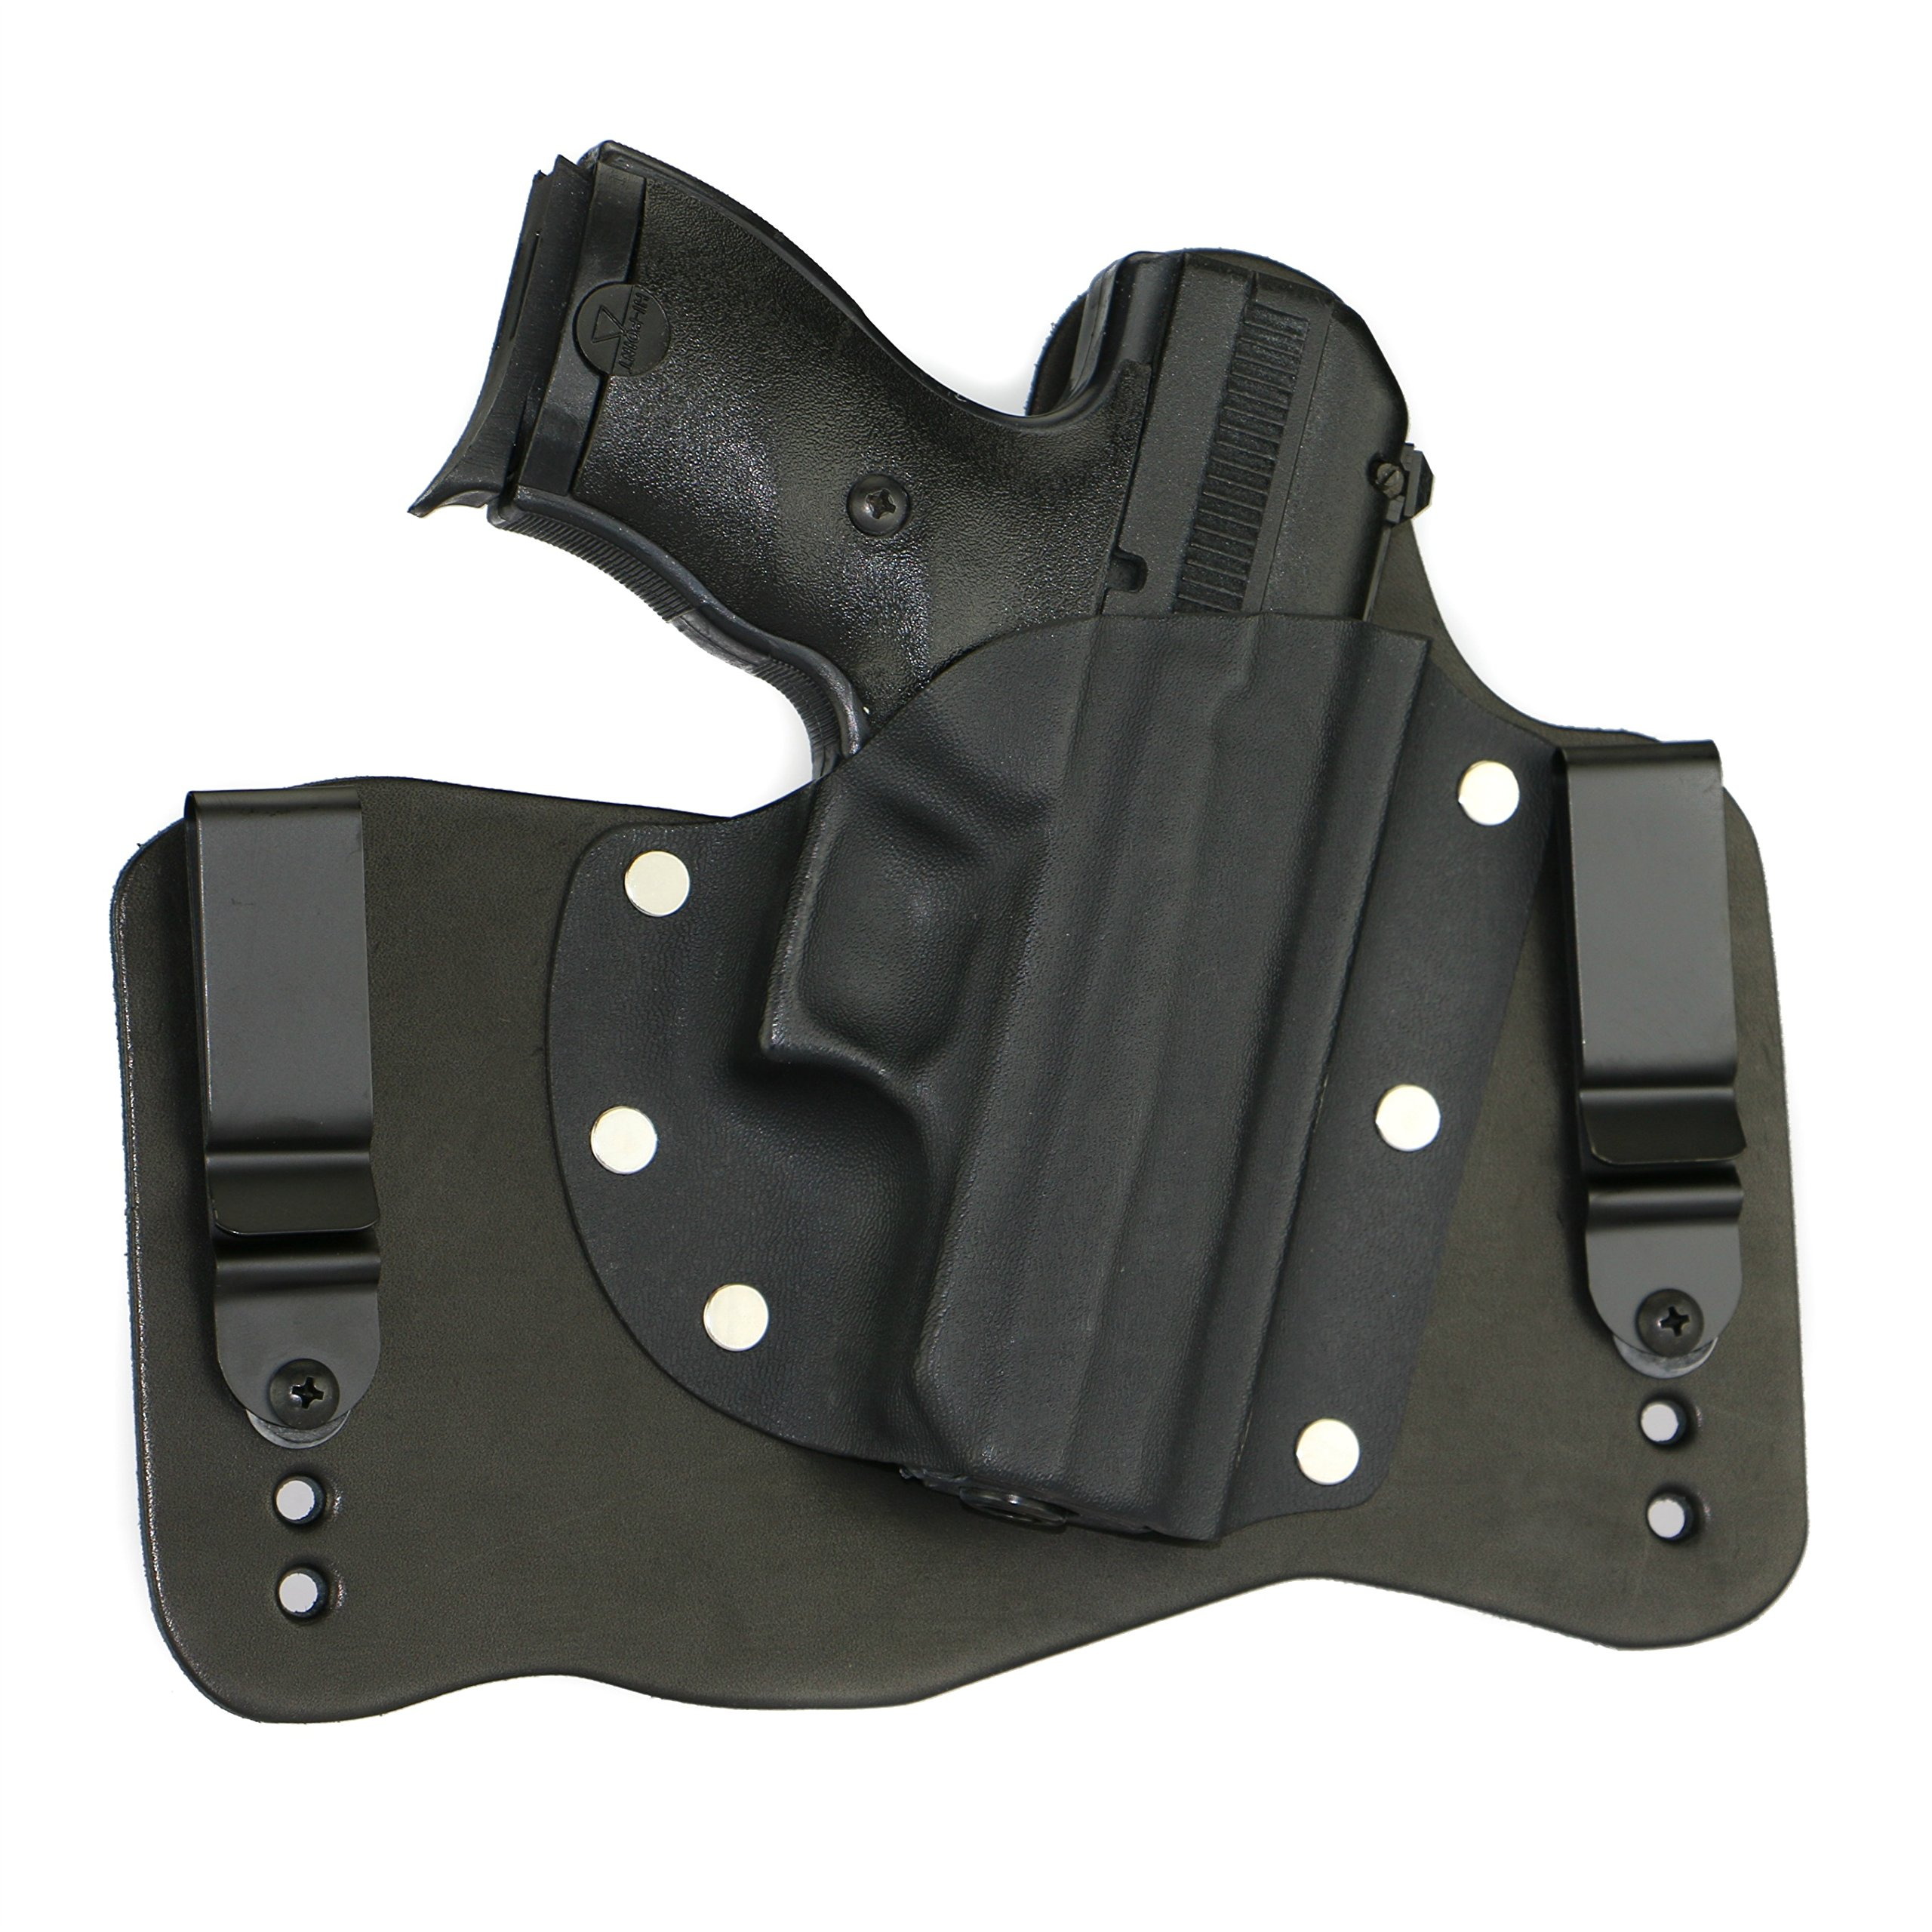 FoxX Holsters Hi-Point C9 9mm IWB Hybrid Holster Tuckable, Concealed Carry Gun Holster